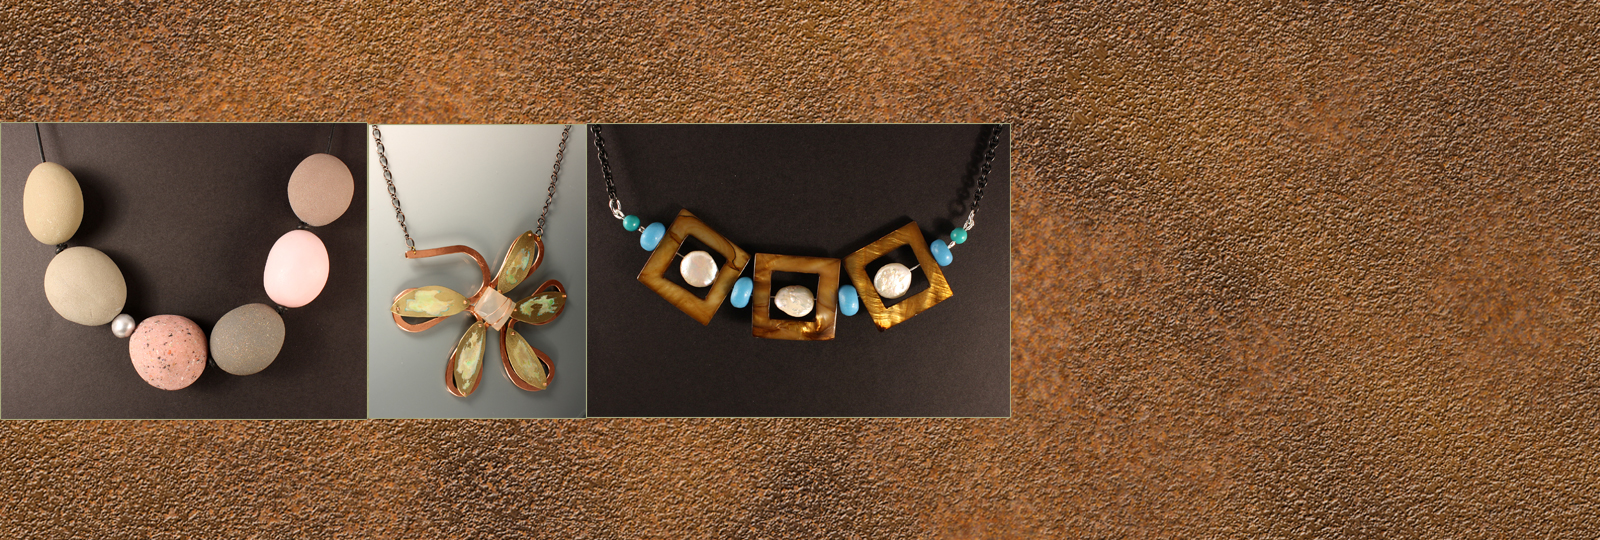 One-Of-A-Kind Designer Neckpieces